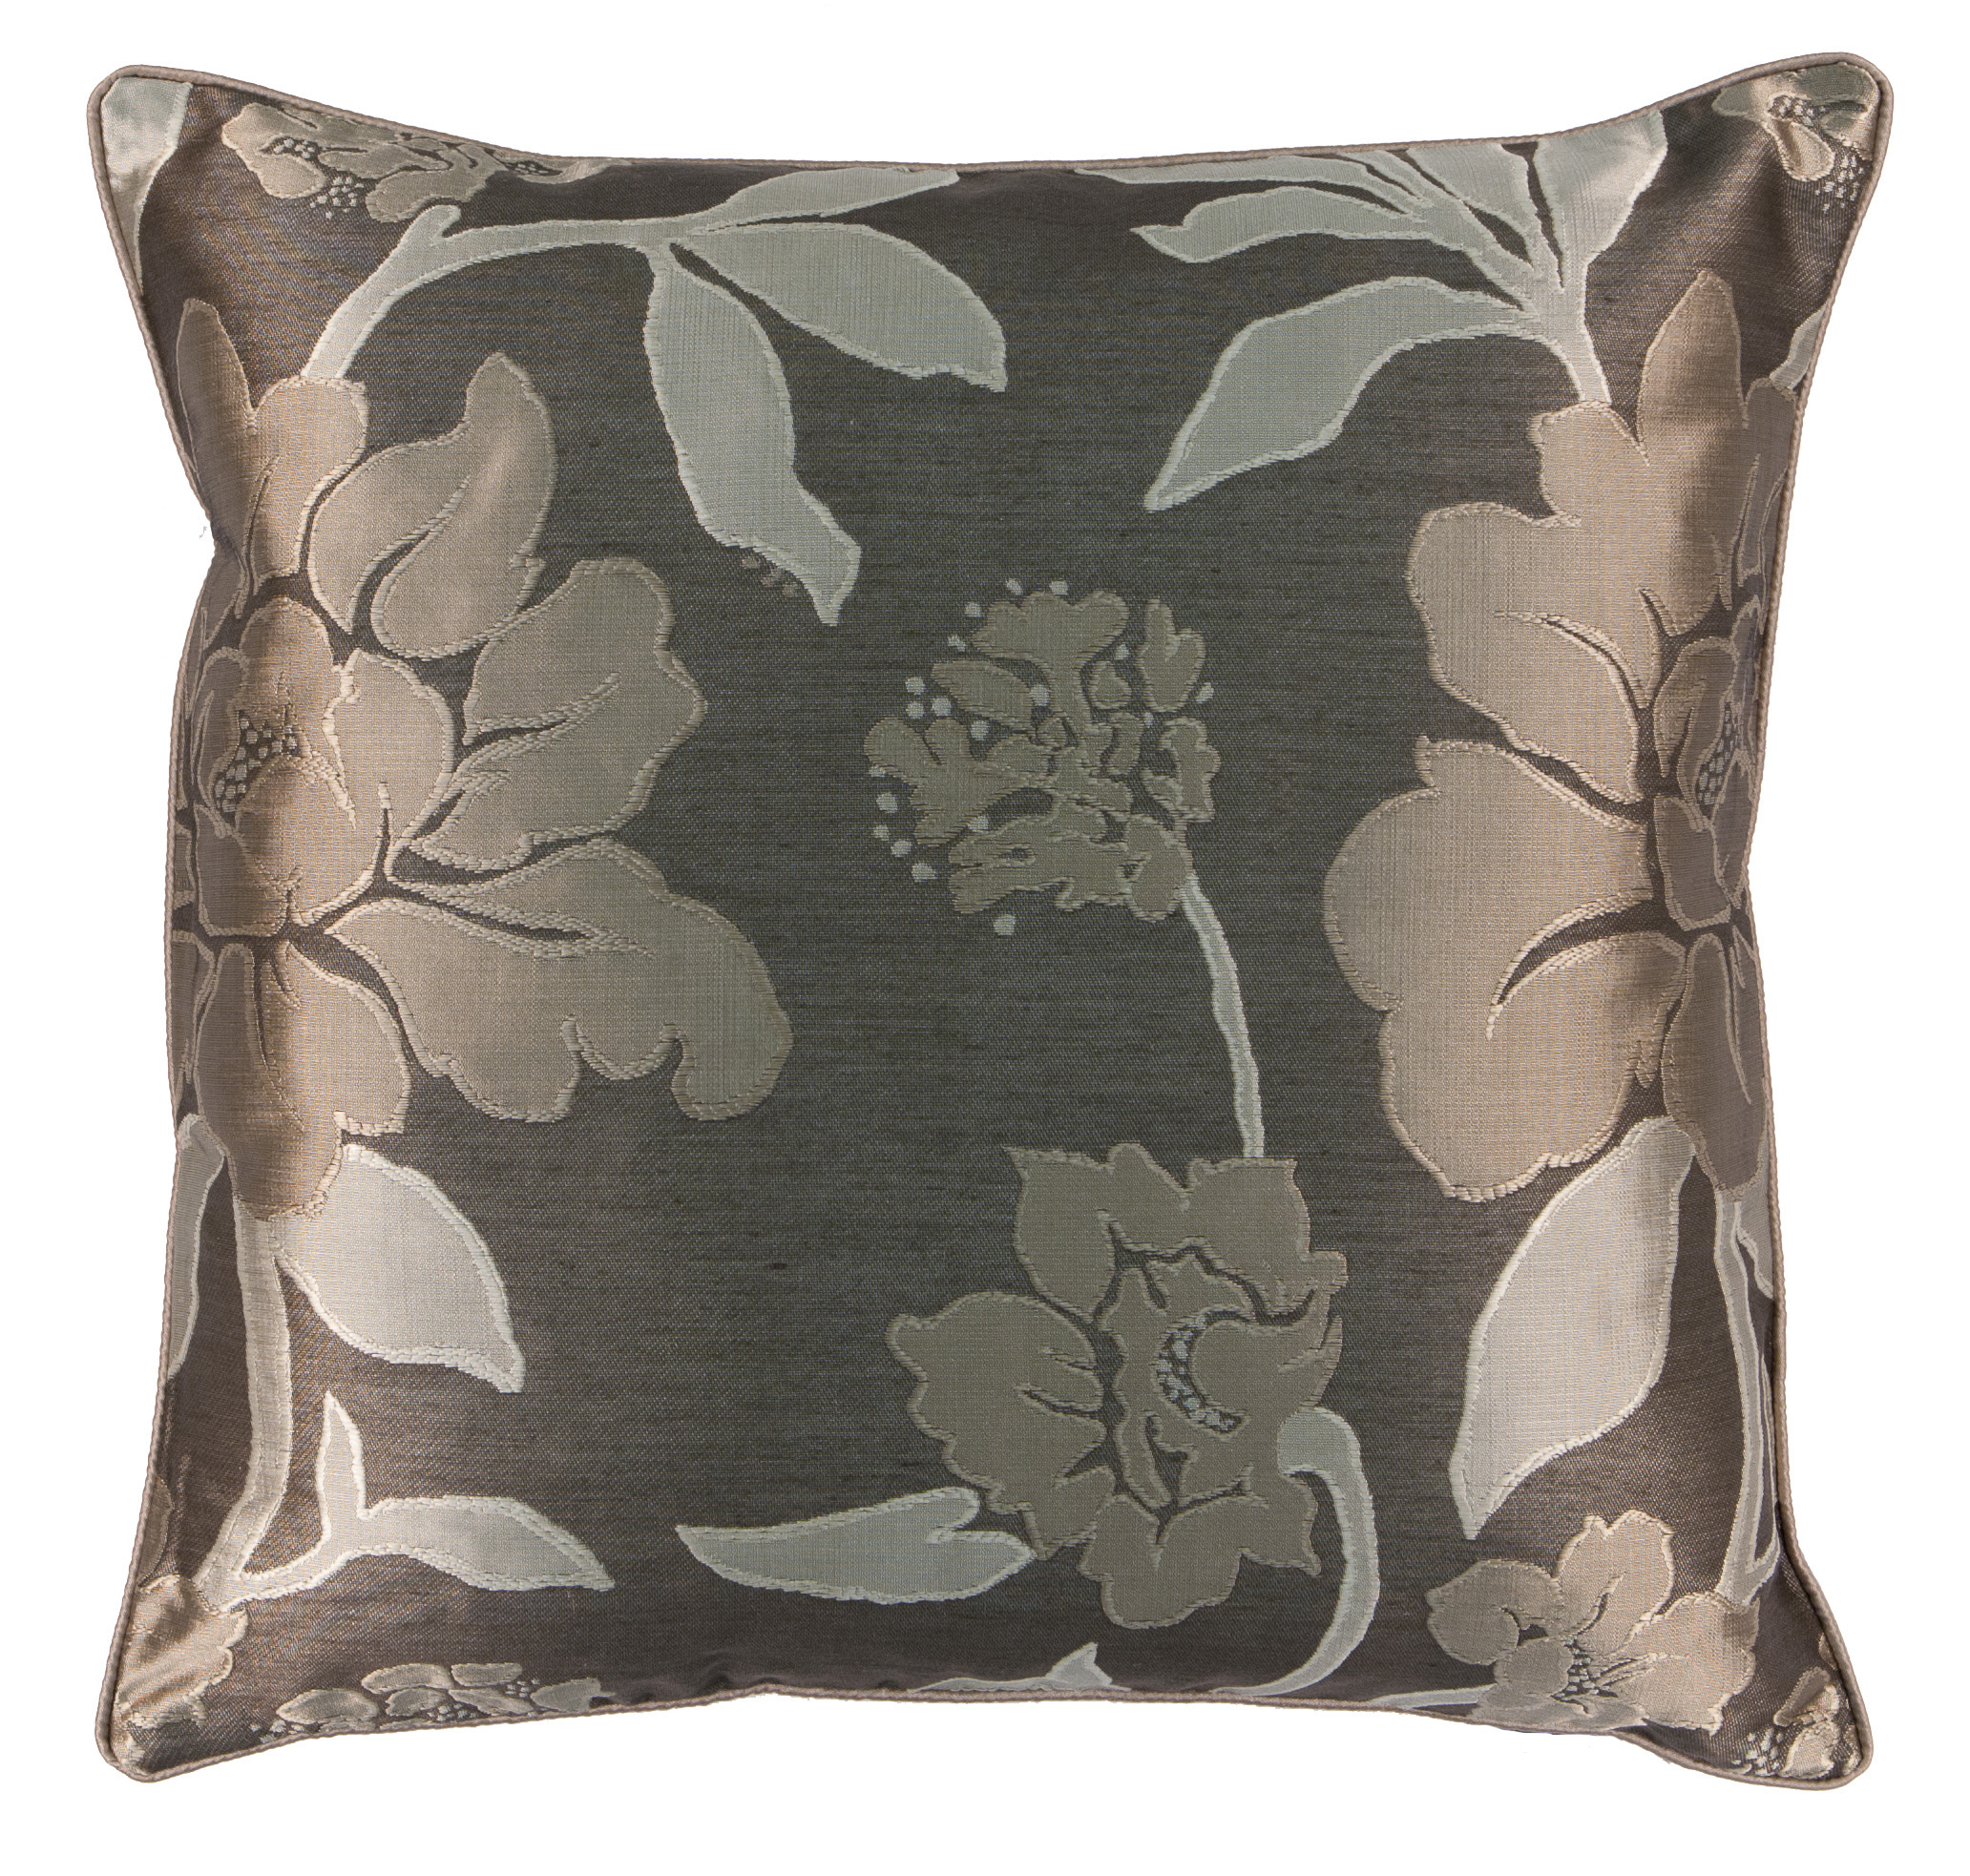 Scatterbox Wisteria Filled Cushion 45x45cm, Latte